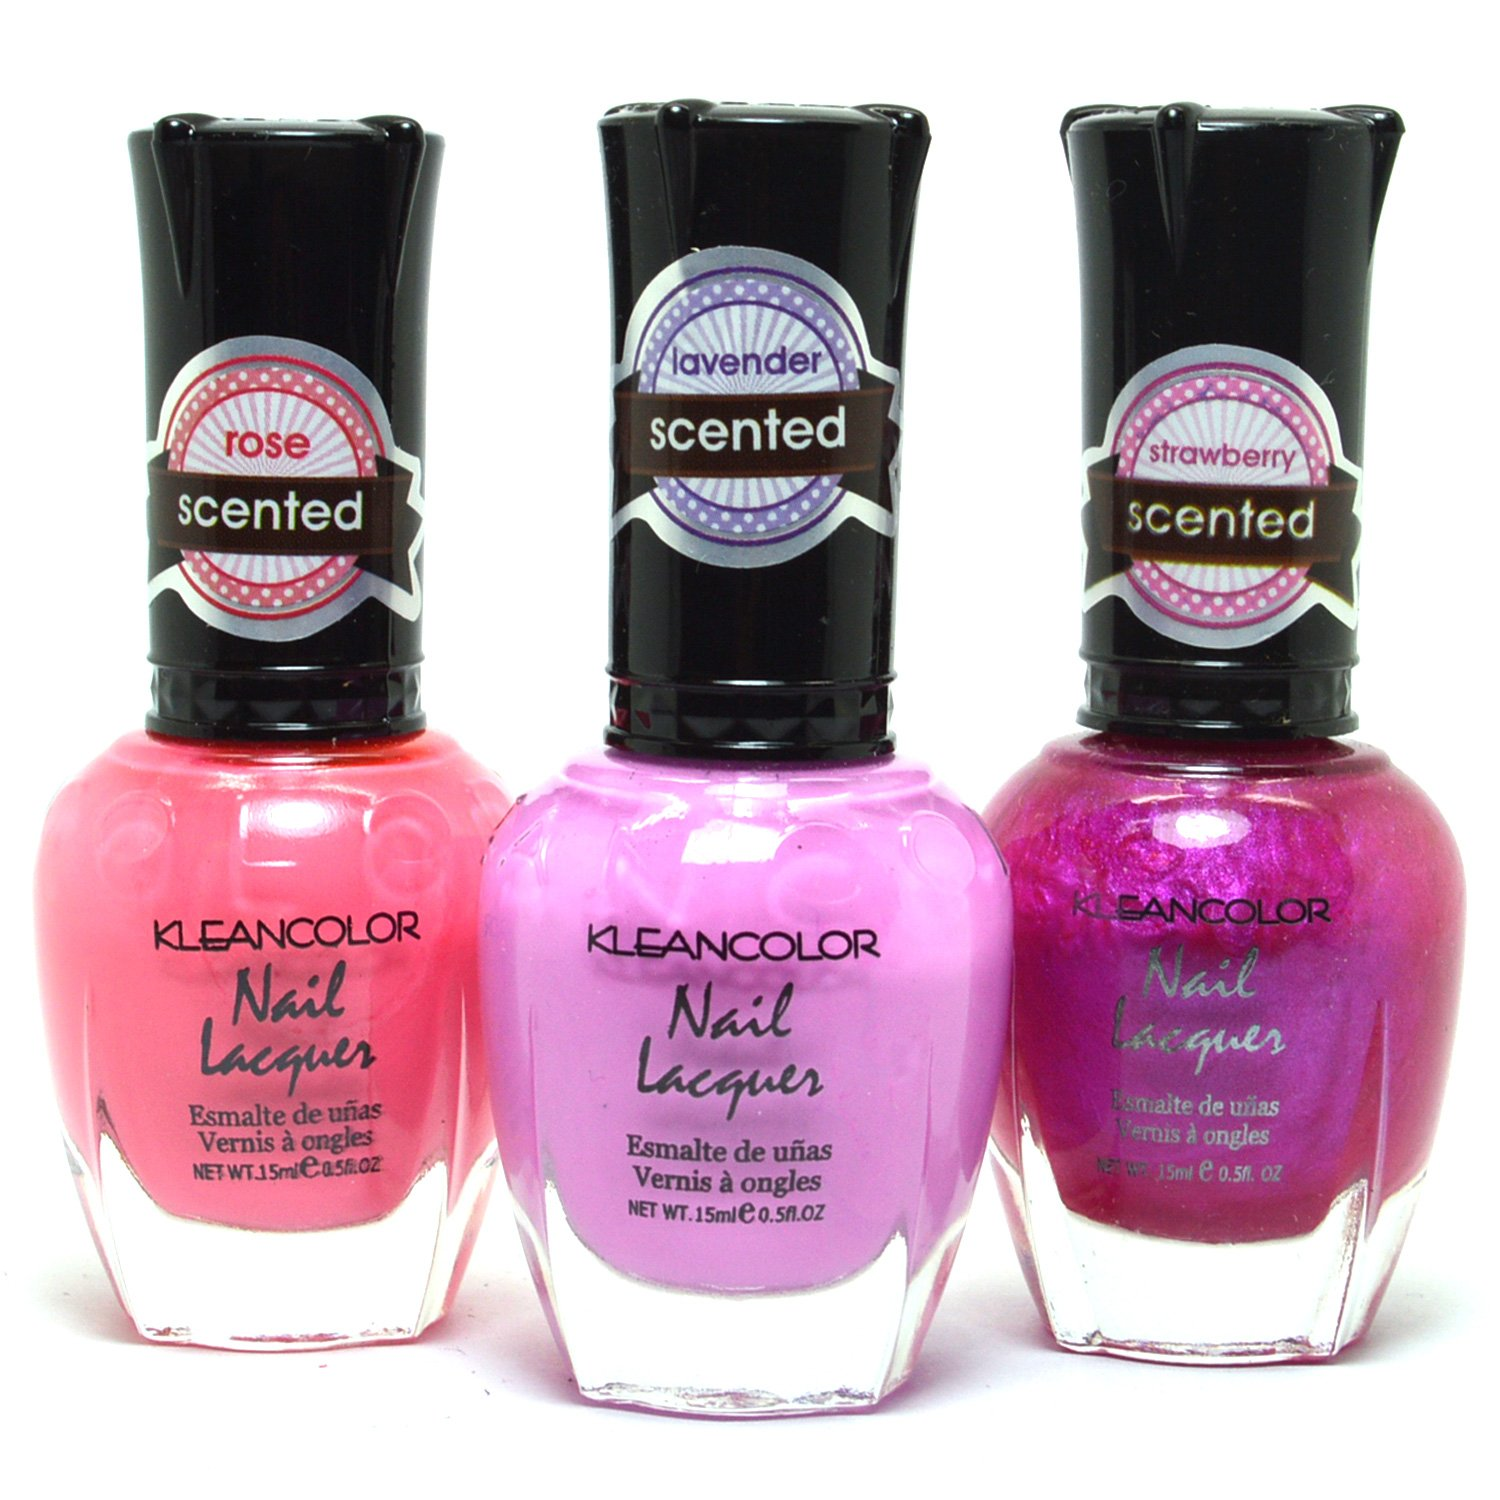 Amazon.com : 3 KLEANCOLOR NAIL POLISH PASTEL PINK, PURPLE